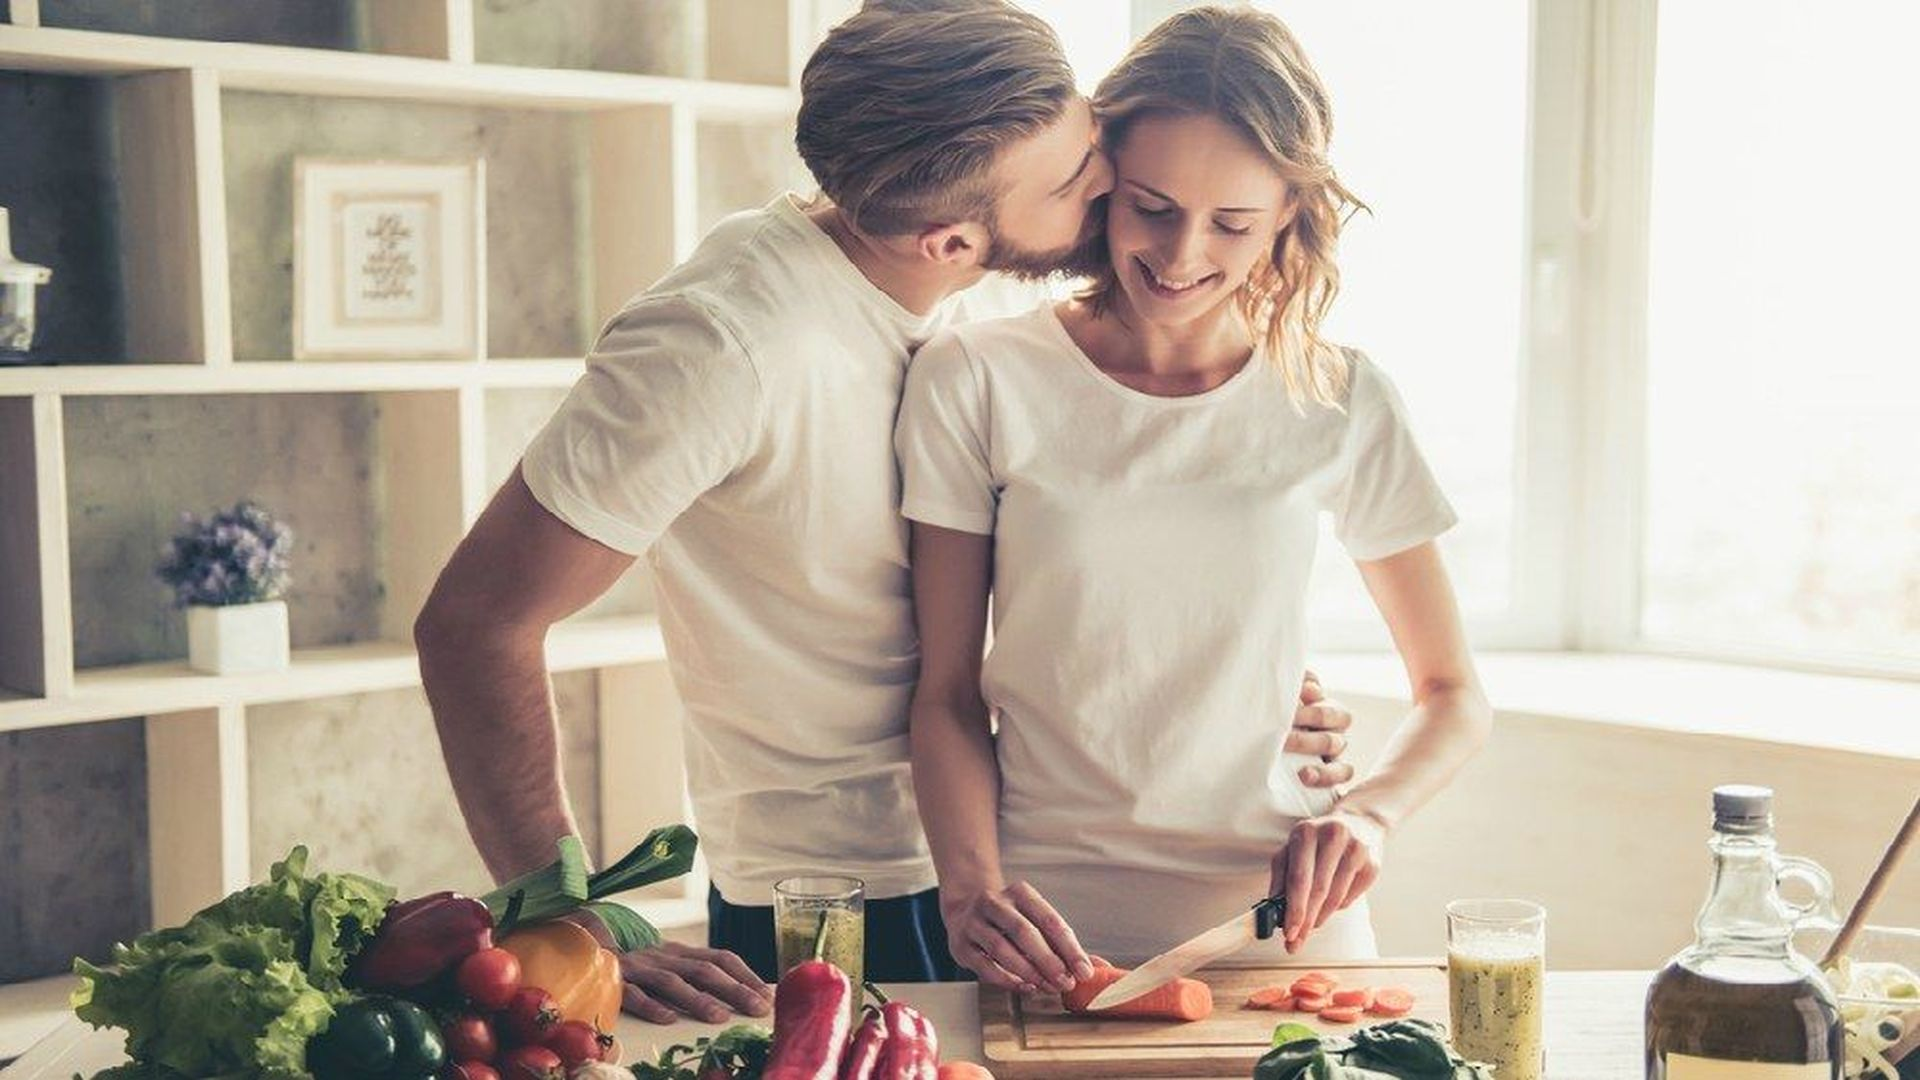 Howstuffworks: What Type of Partner Are You in a Relationship?